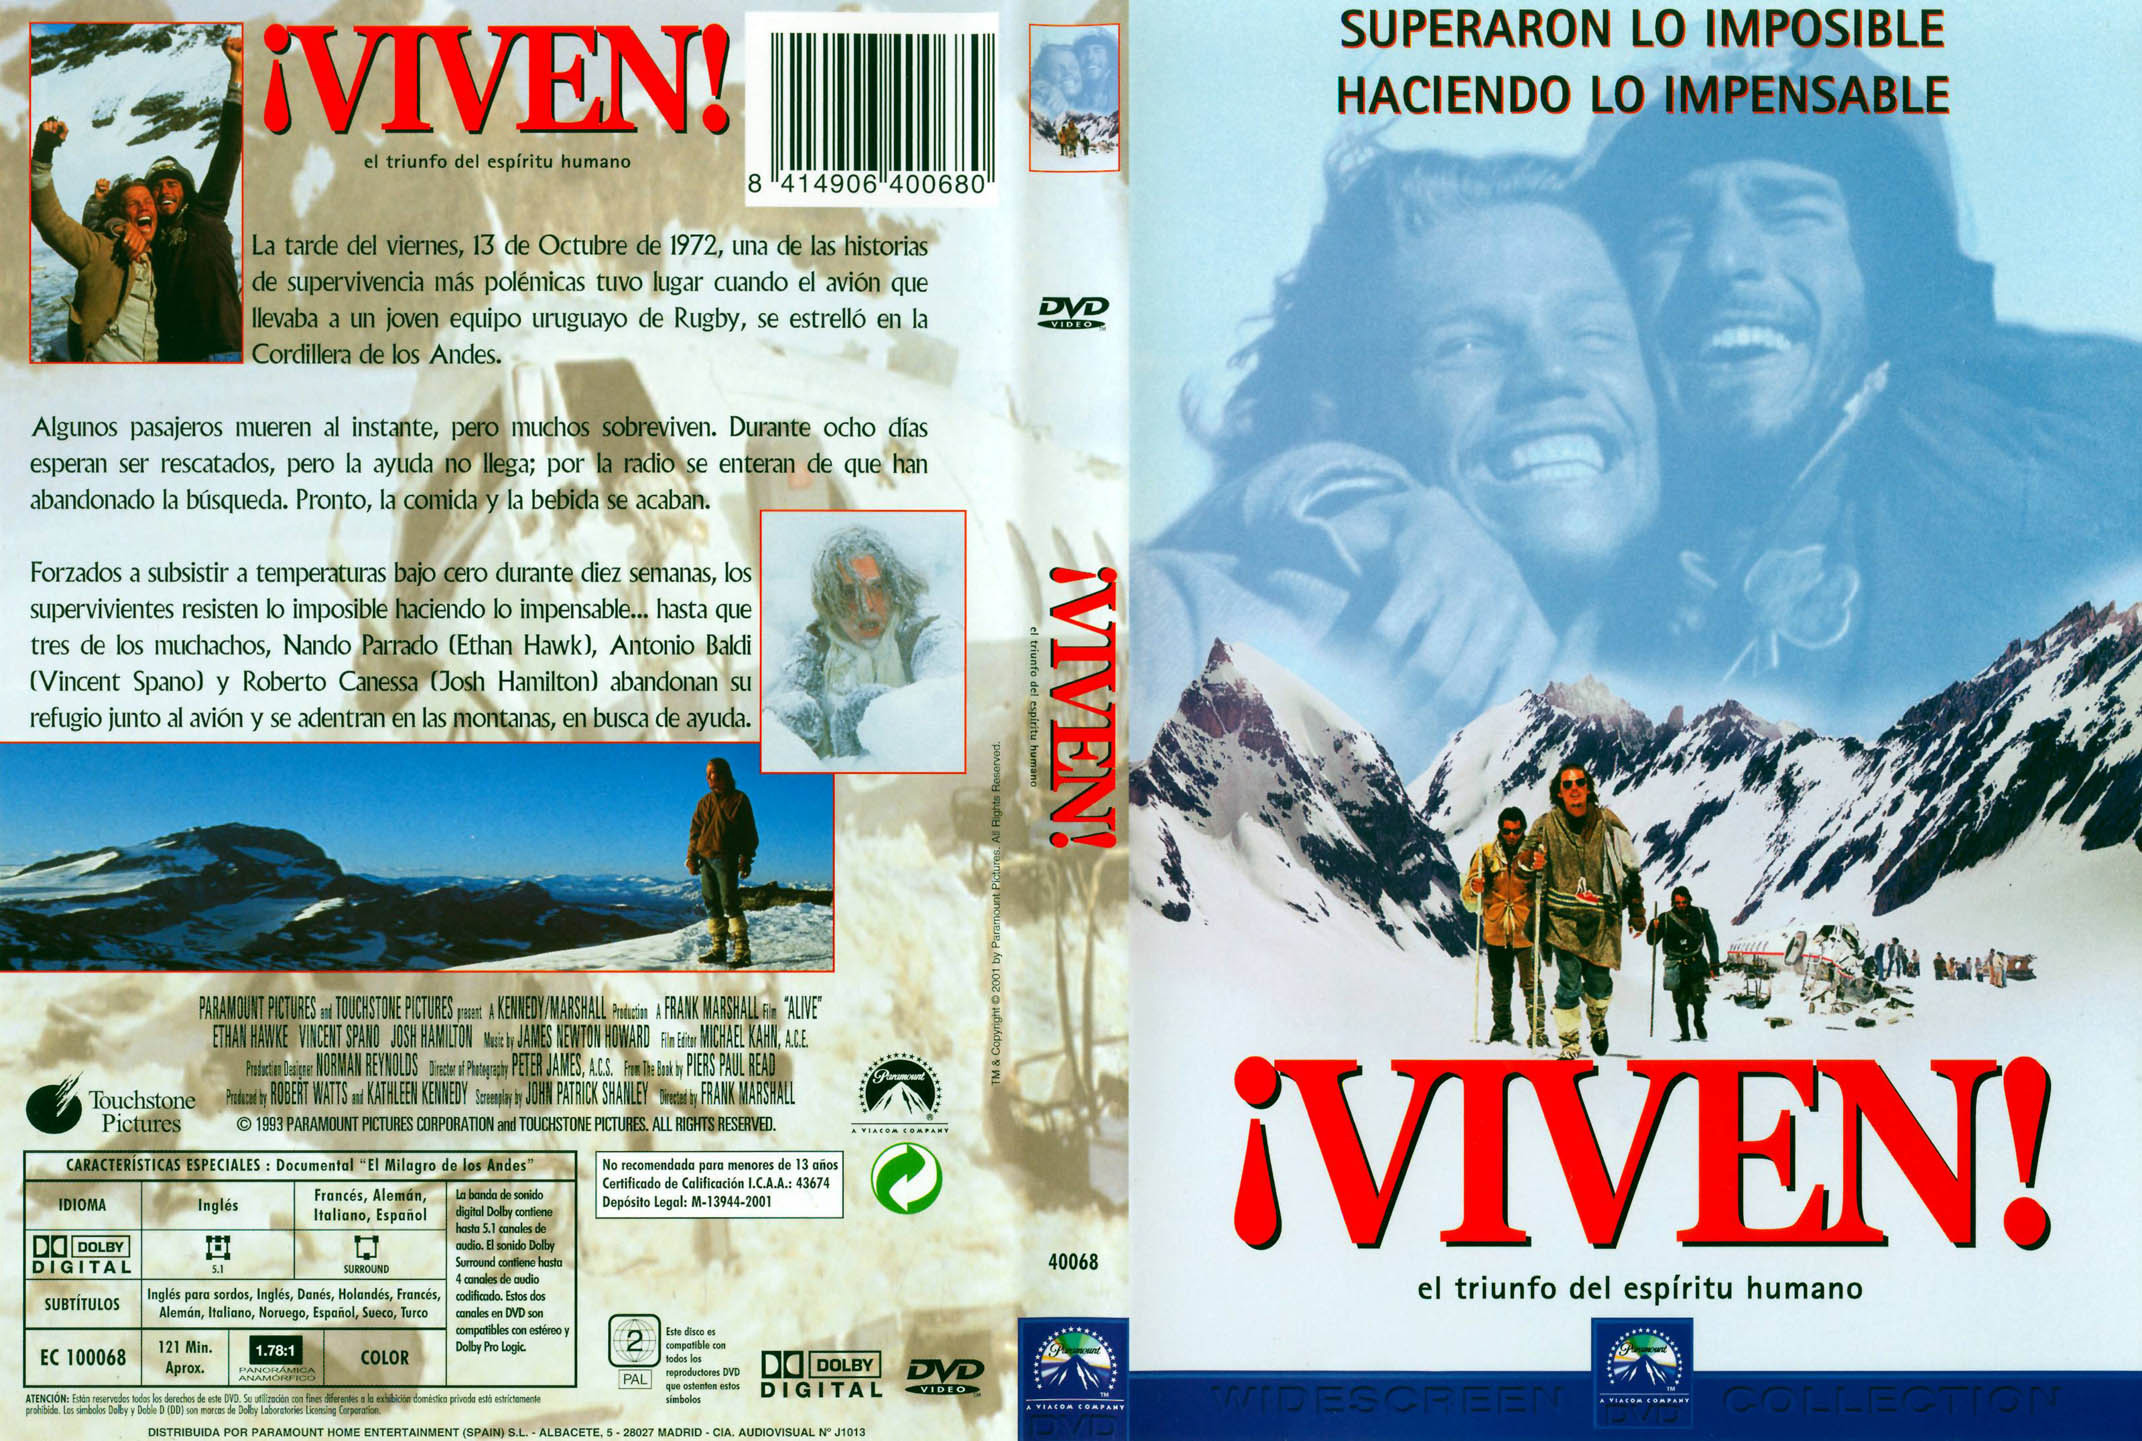 Crash Libro Viven 1993 Hdtv 720p Audio English Latino Identi